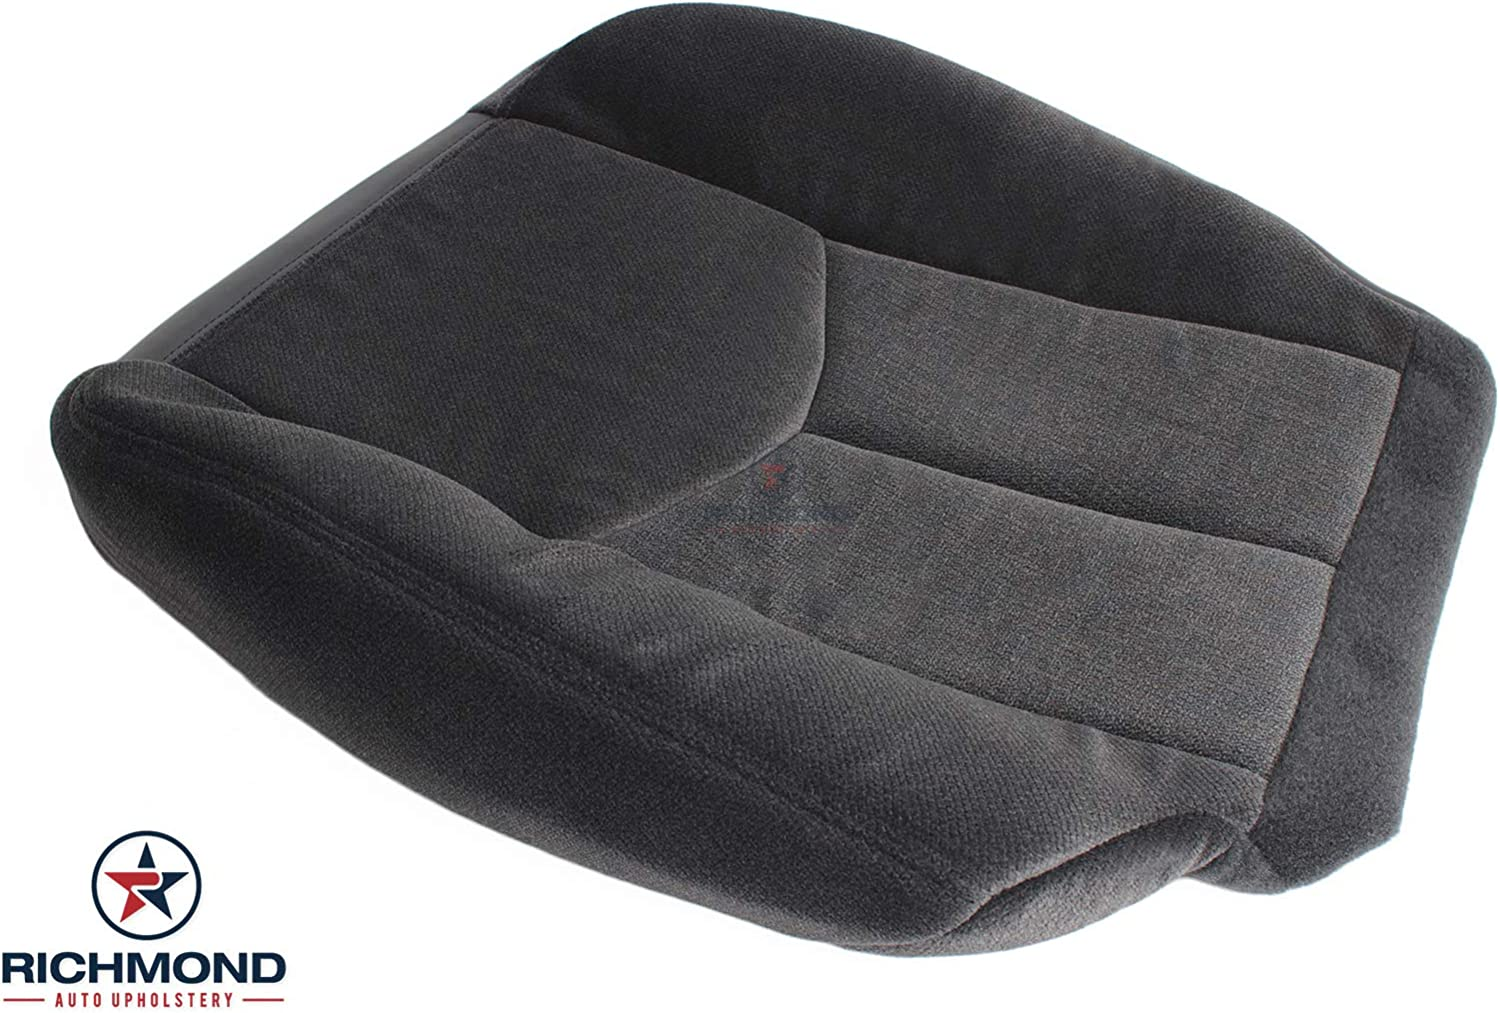 Compatible with 2004 2005 2006 GMC Sierra 1500 2500 SLE SLT Z71 HD Gray Driver Side Bottom Replacement Cloth Seat Cover Richmond Auto Upholstery